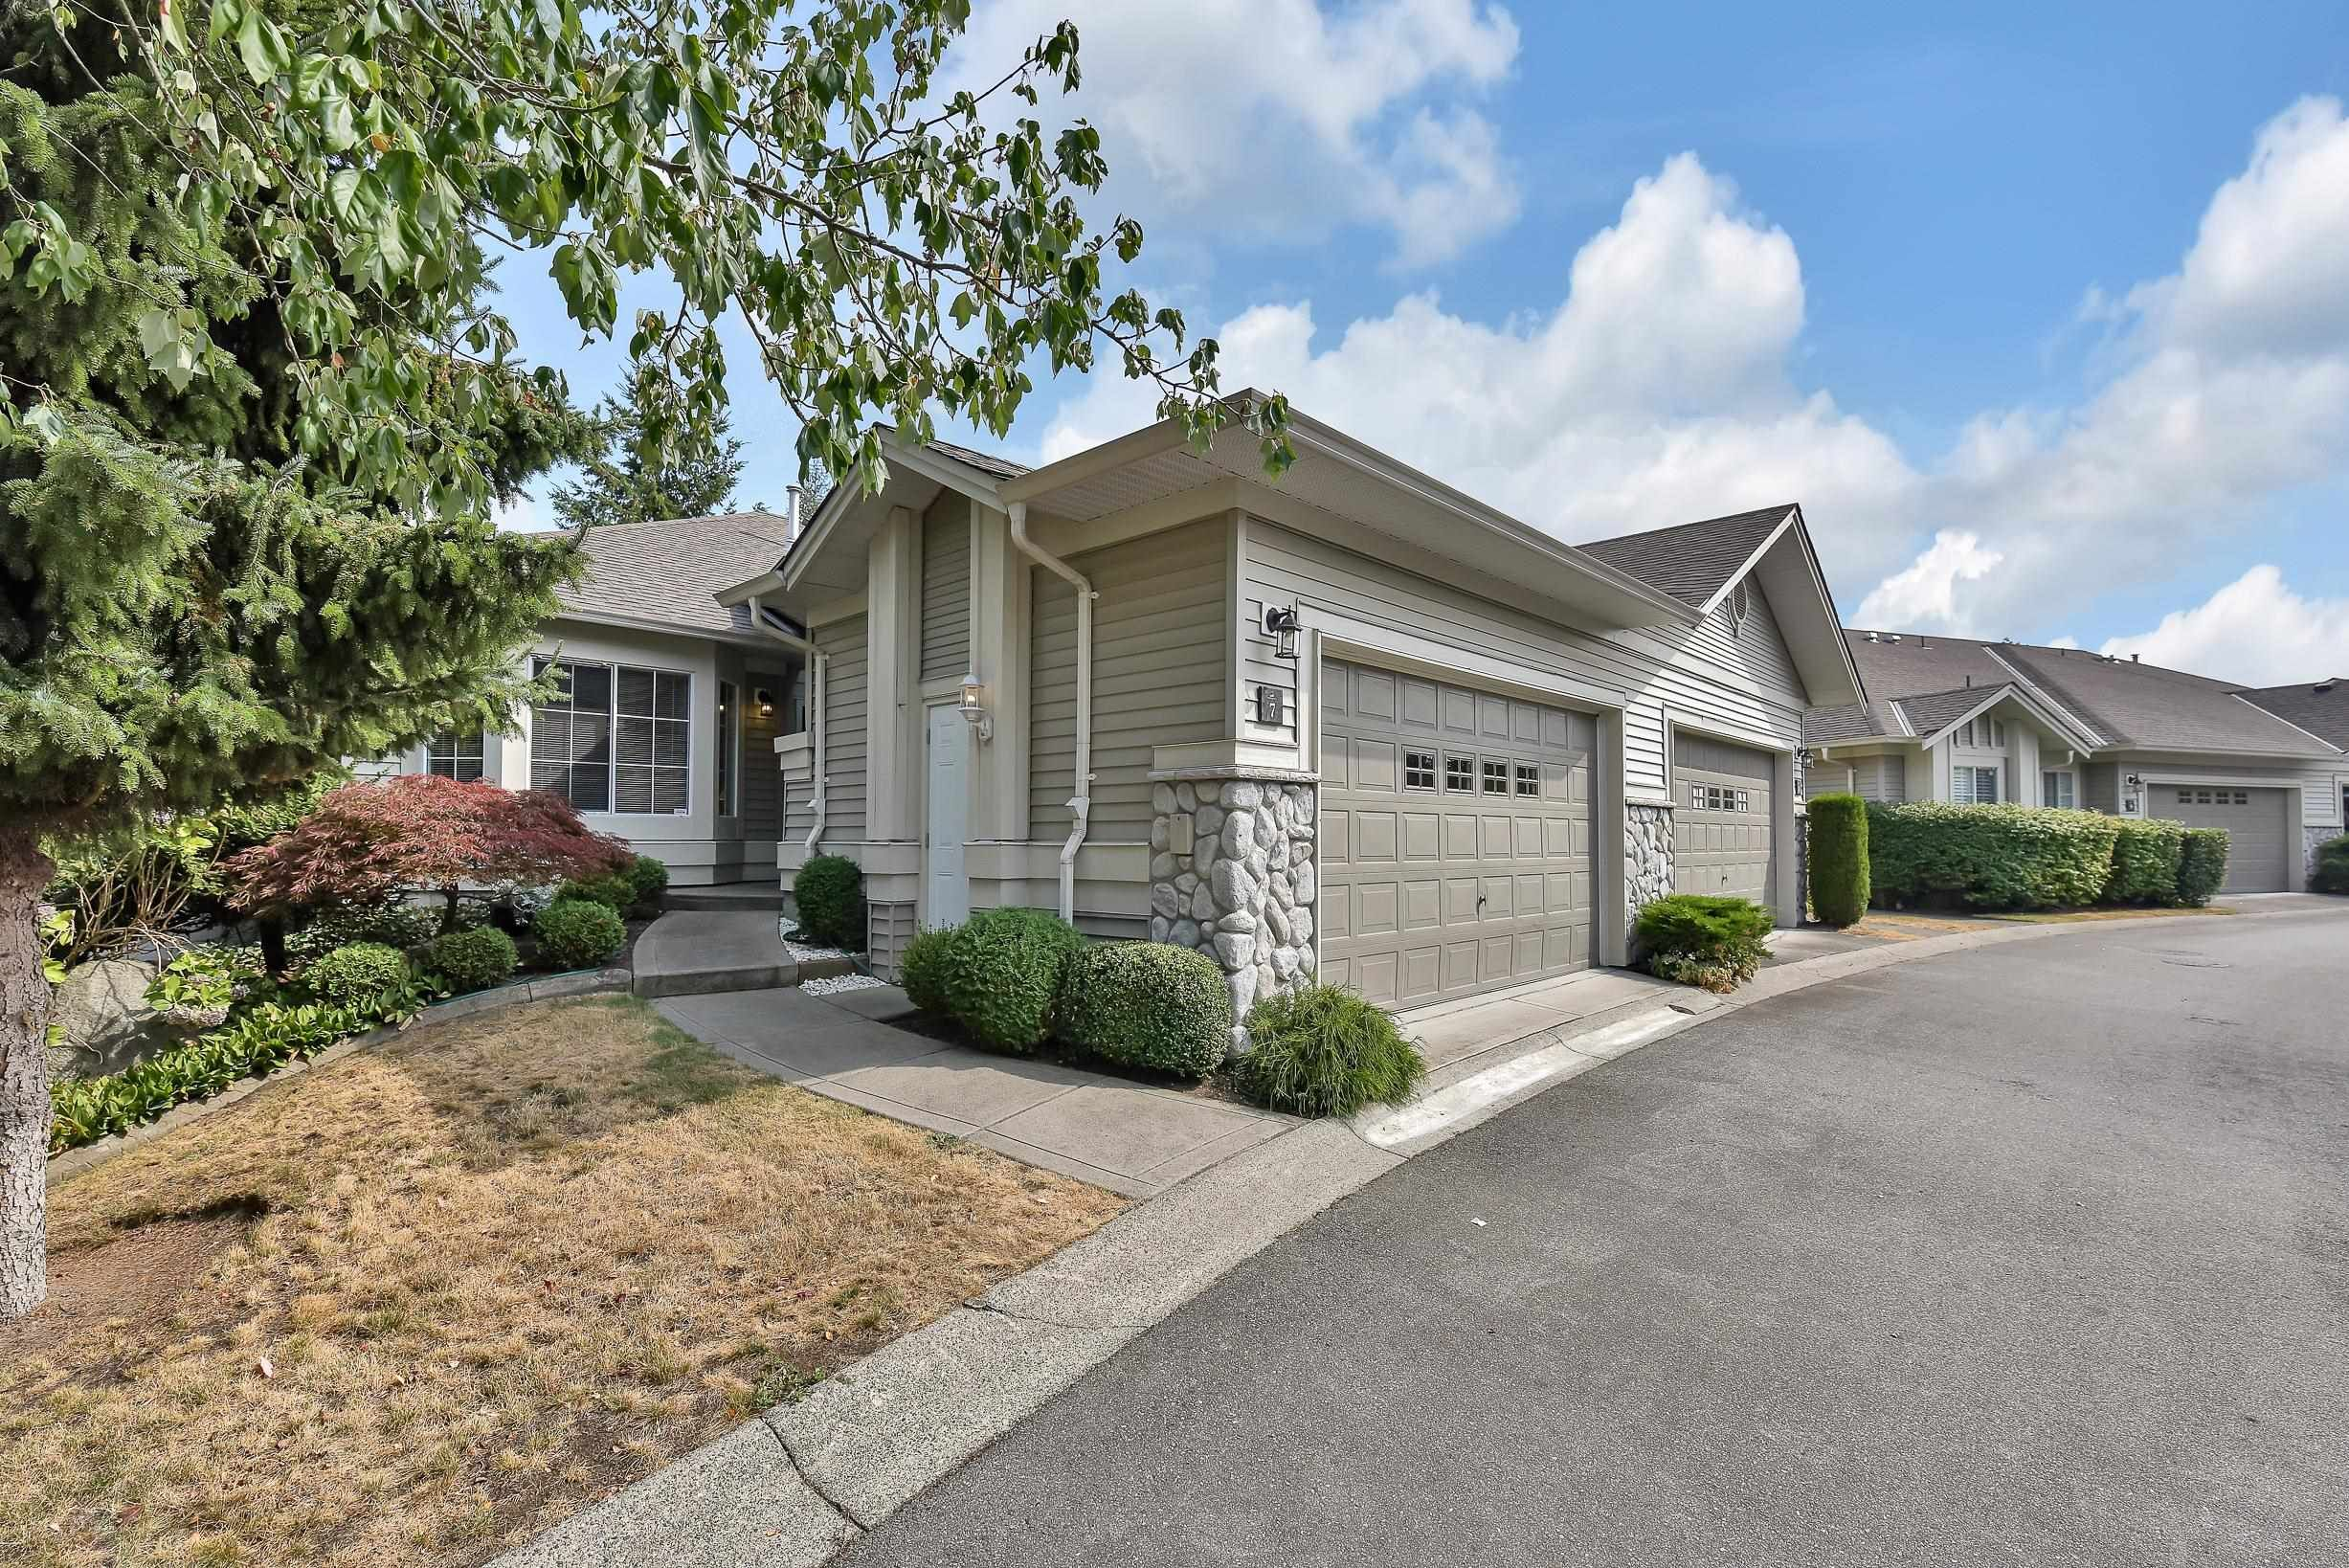 """Main Photo: 7 16888 80 Avenue in Surrey: Fleetwood Tynehead Townhouse for sale in """"STONECROFT"""" : MLS®# R2610789"""